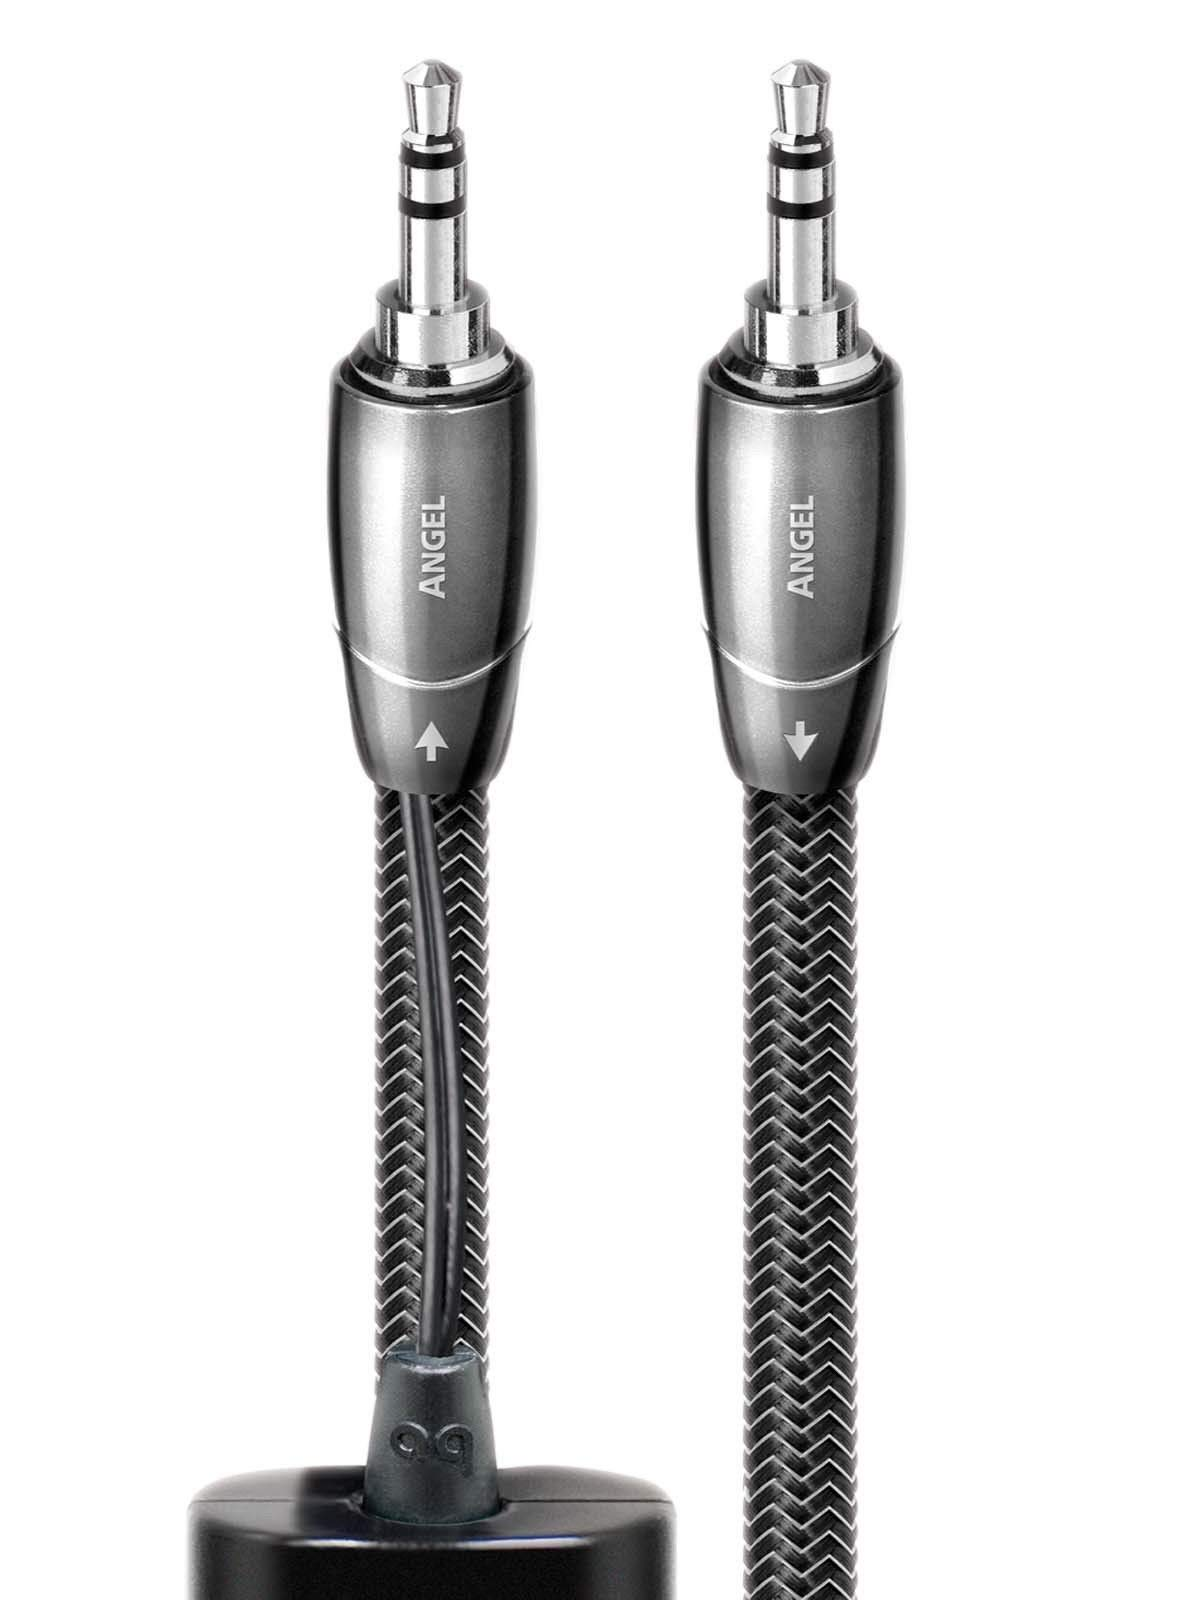 AudioQuest Tower 3.5mm to 3.5mm Cable 2m 6.56 ft.